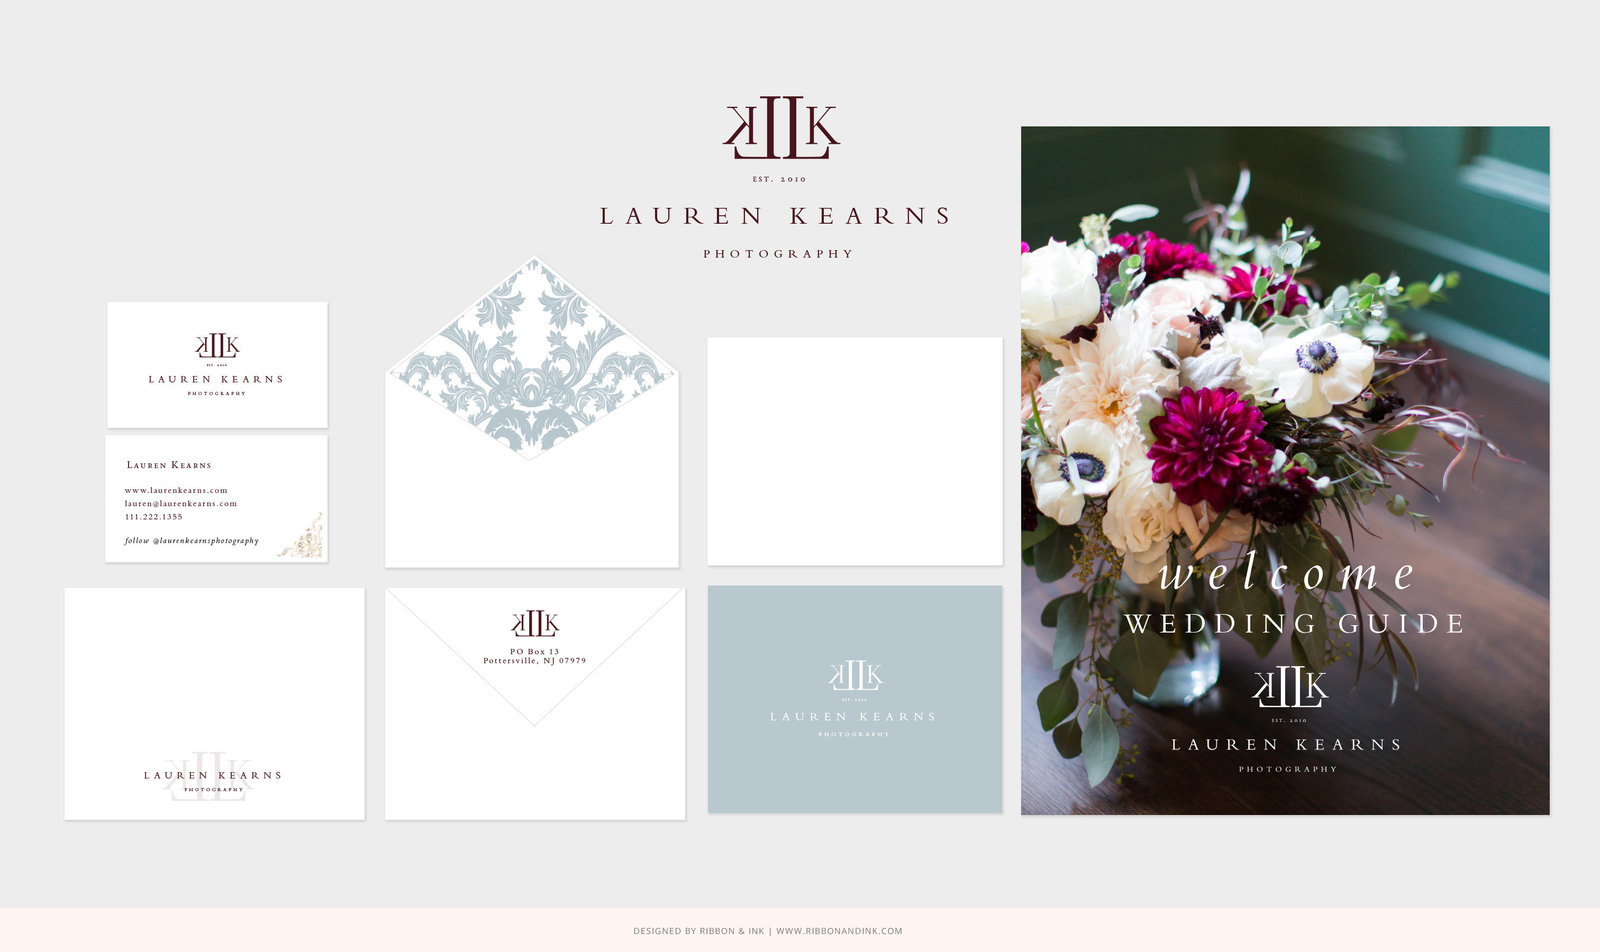 LaurenKearns_Stationery_v03